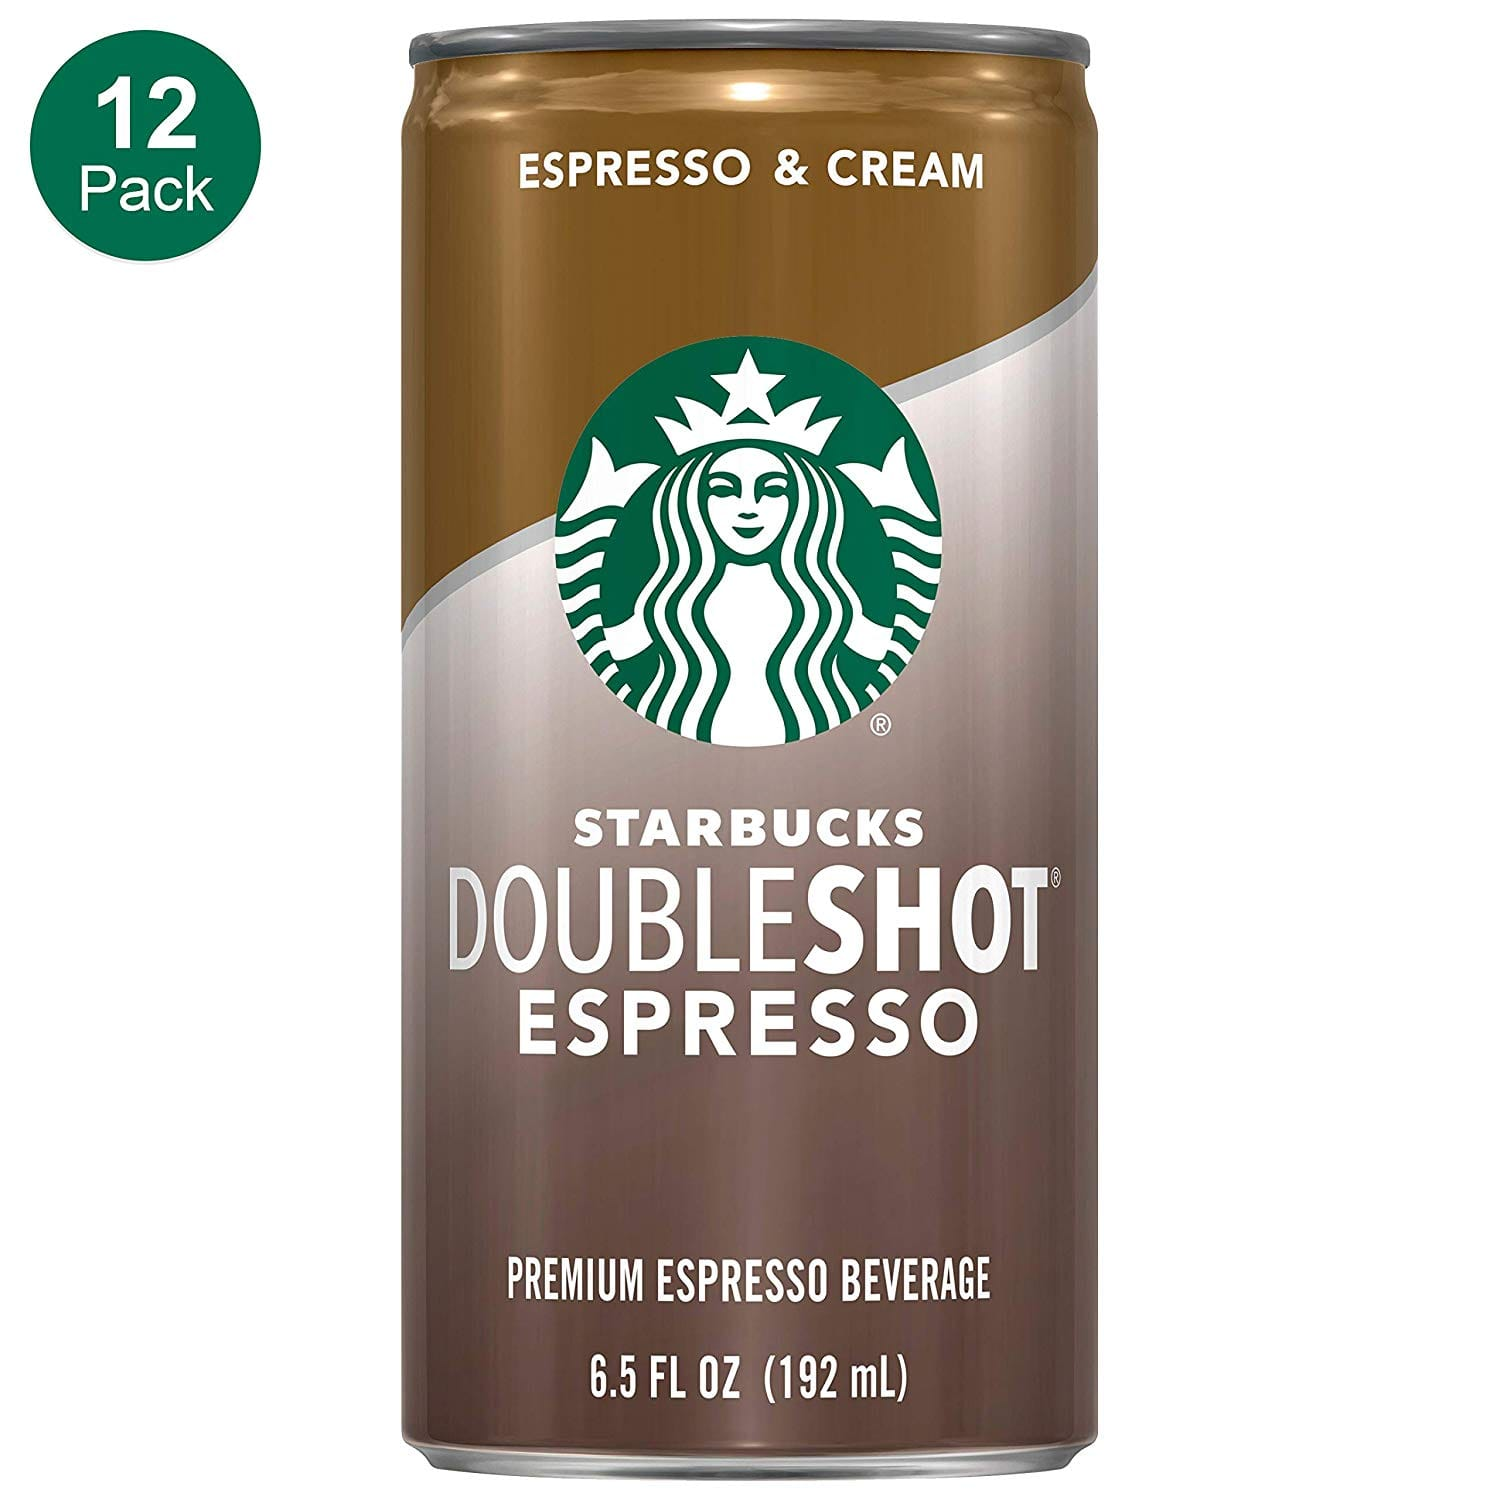 12-Pack 6.5 oz. Starbucks Doubleshot, Espresso + Cream for $12.78 with Coupon and S&S via Amazon